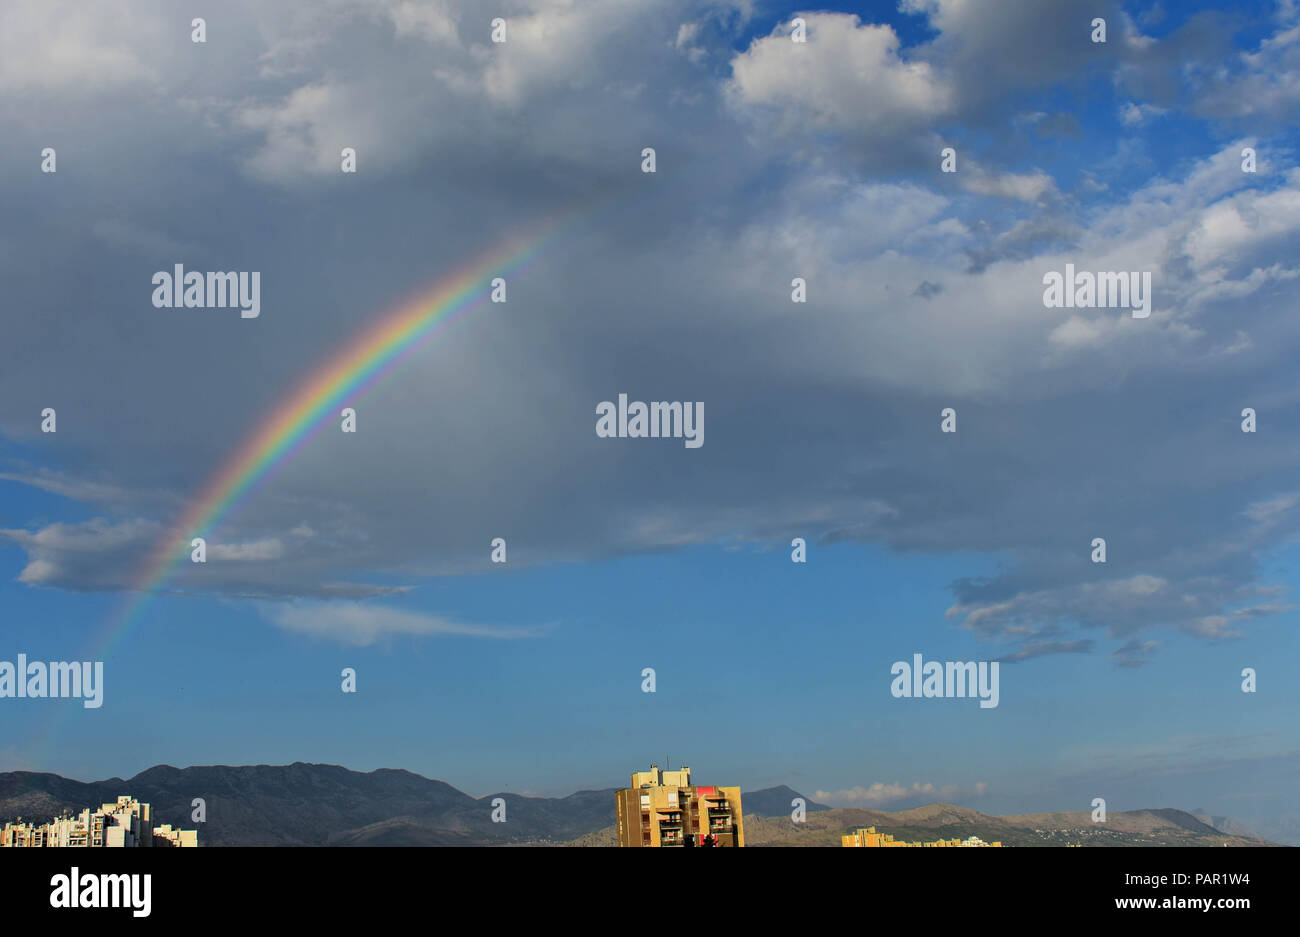 Bright colorful rainbow over city, sun shining in rainy day, beautiful colors phenomenon in dark blue sky, overcast weather, nature landscape in the t - Stock Image